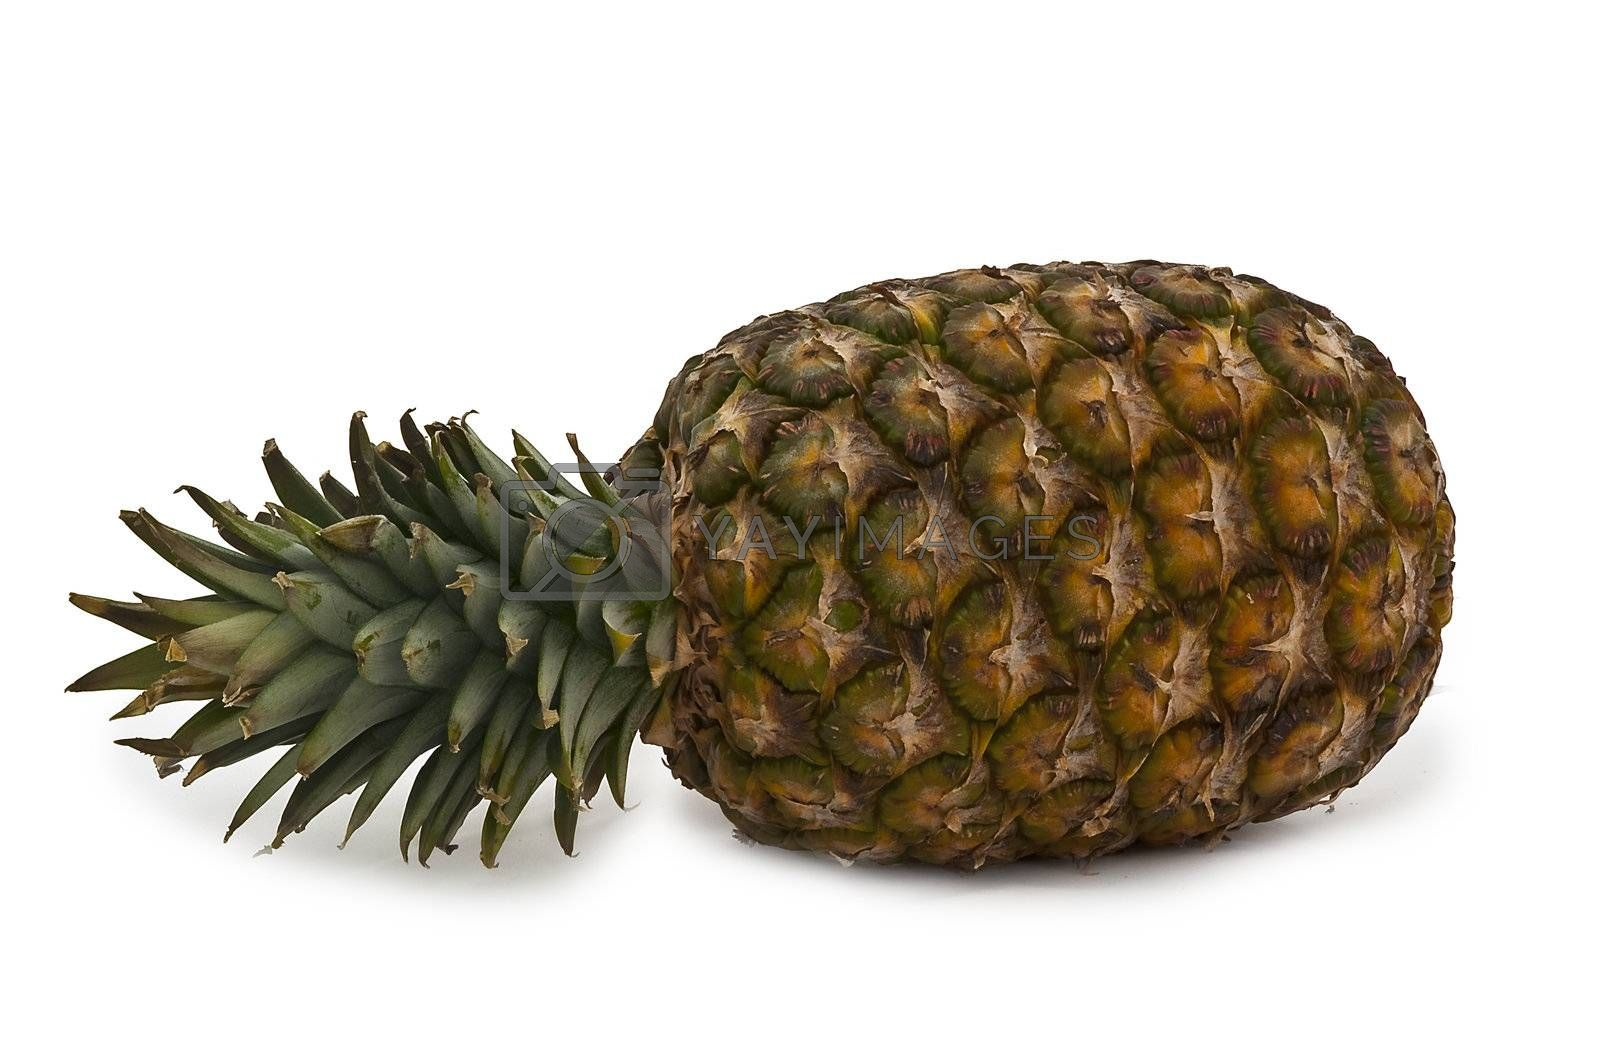 entire clump with pineapple on white background